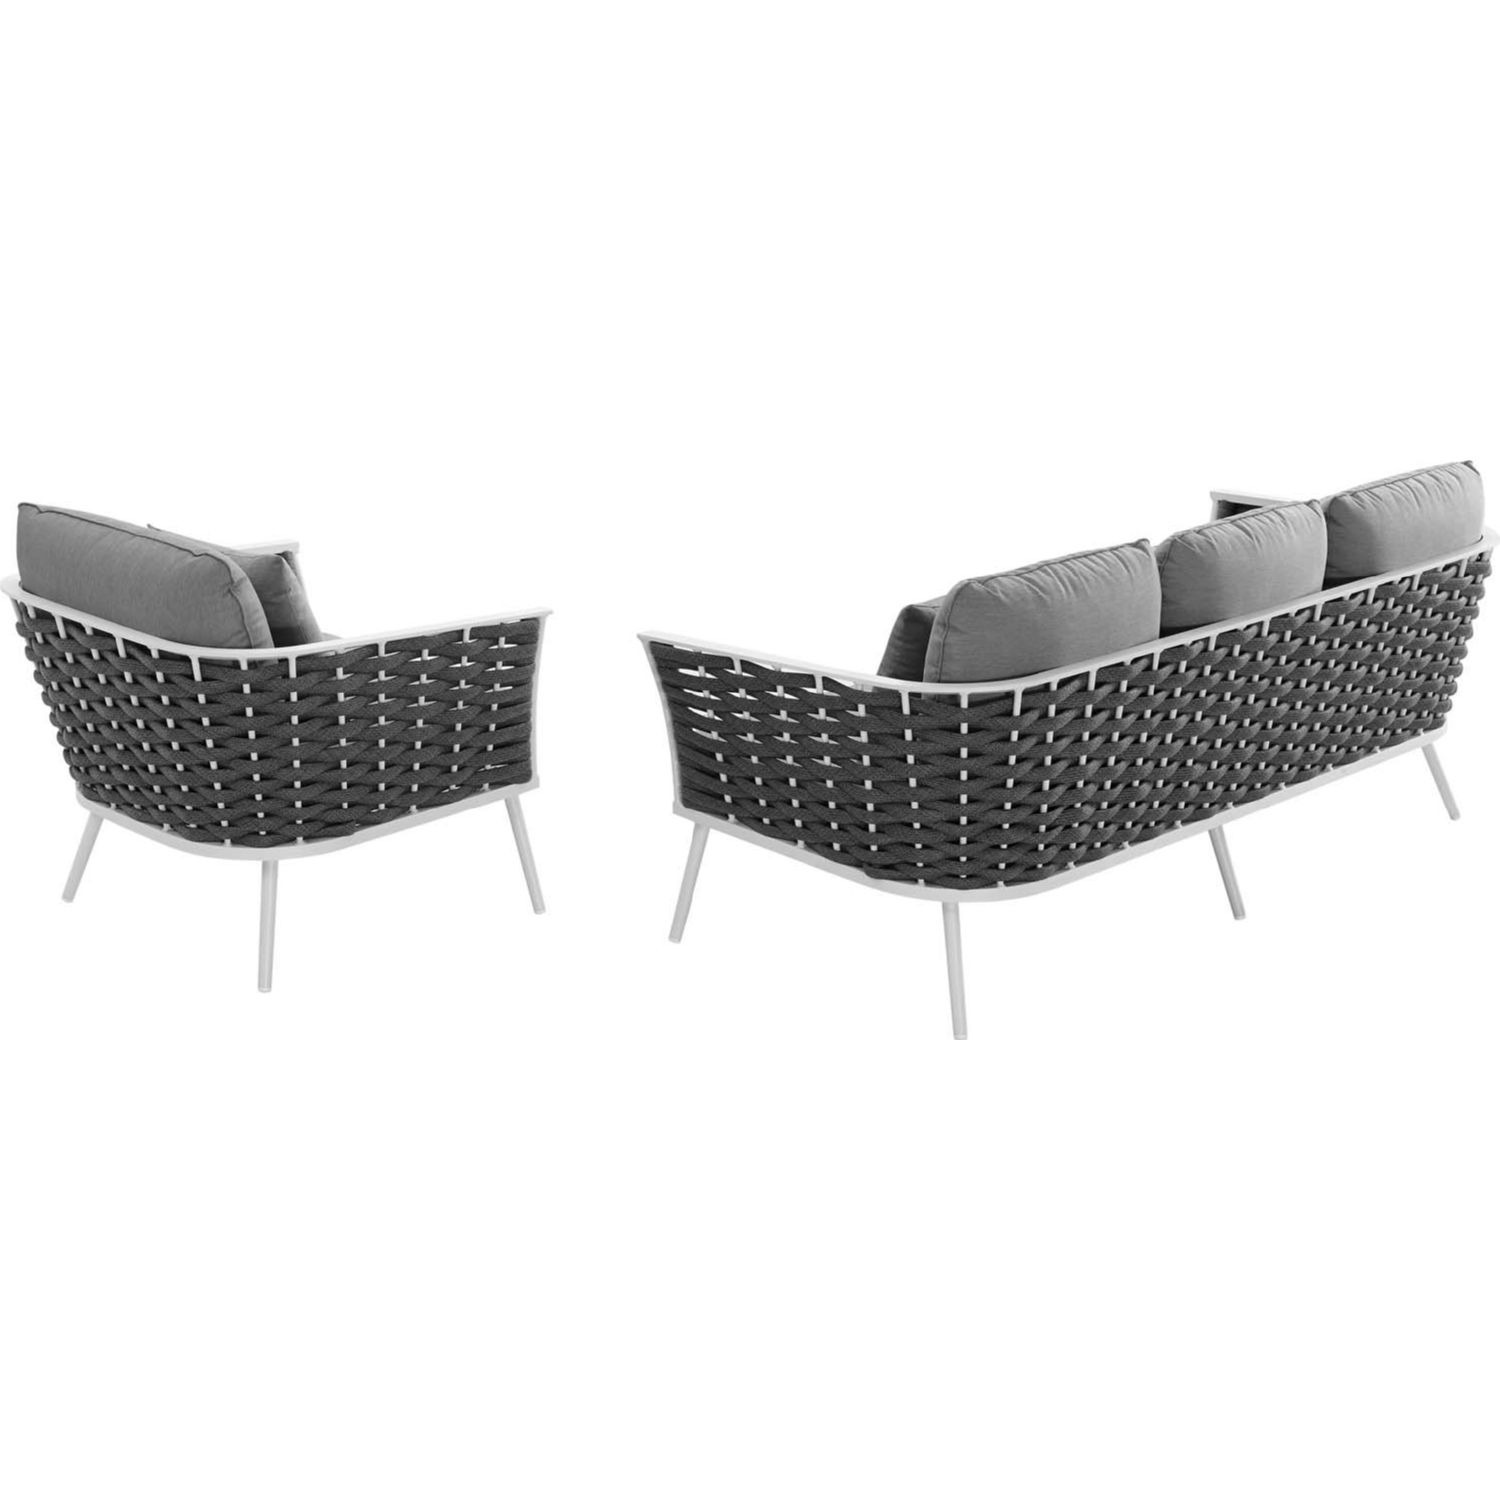 2-Piece Outdoor Sectional In Gray Foam Padding - image-1